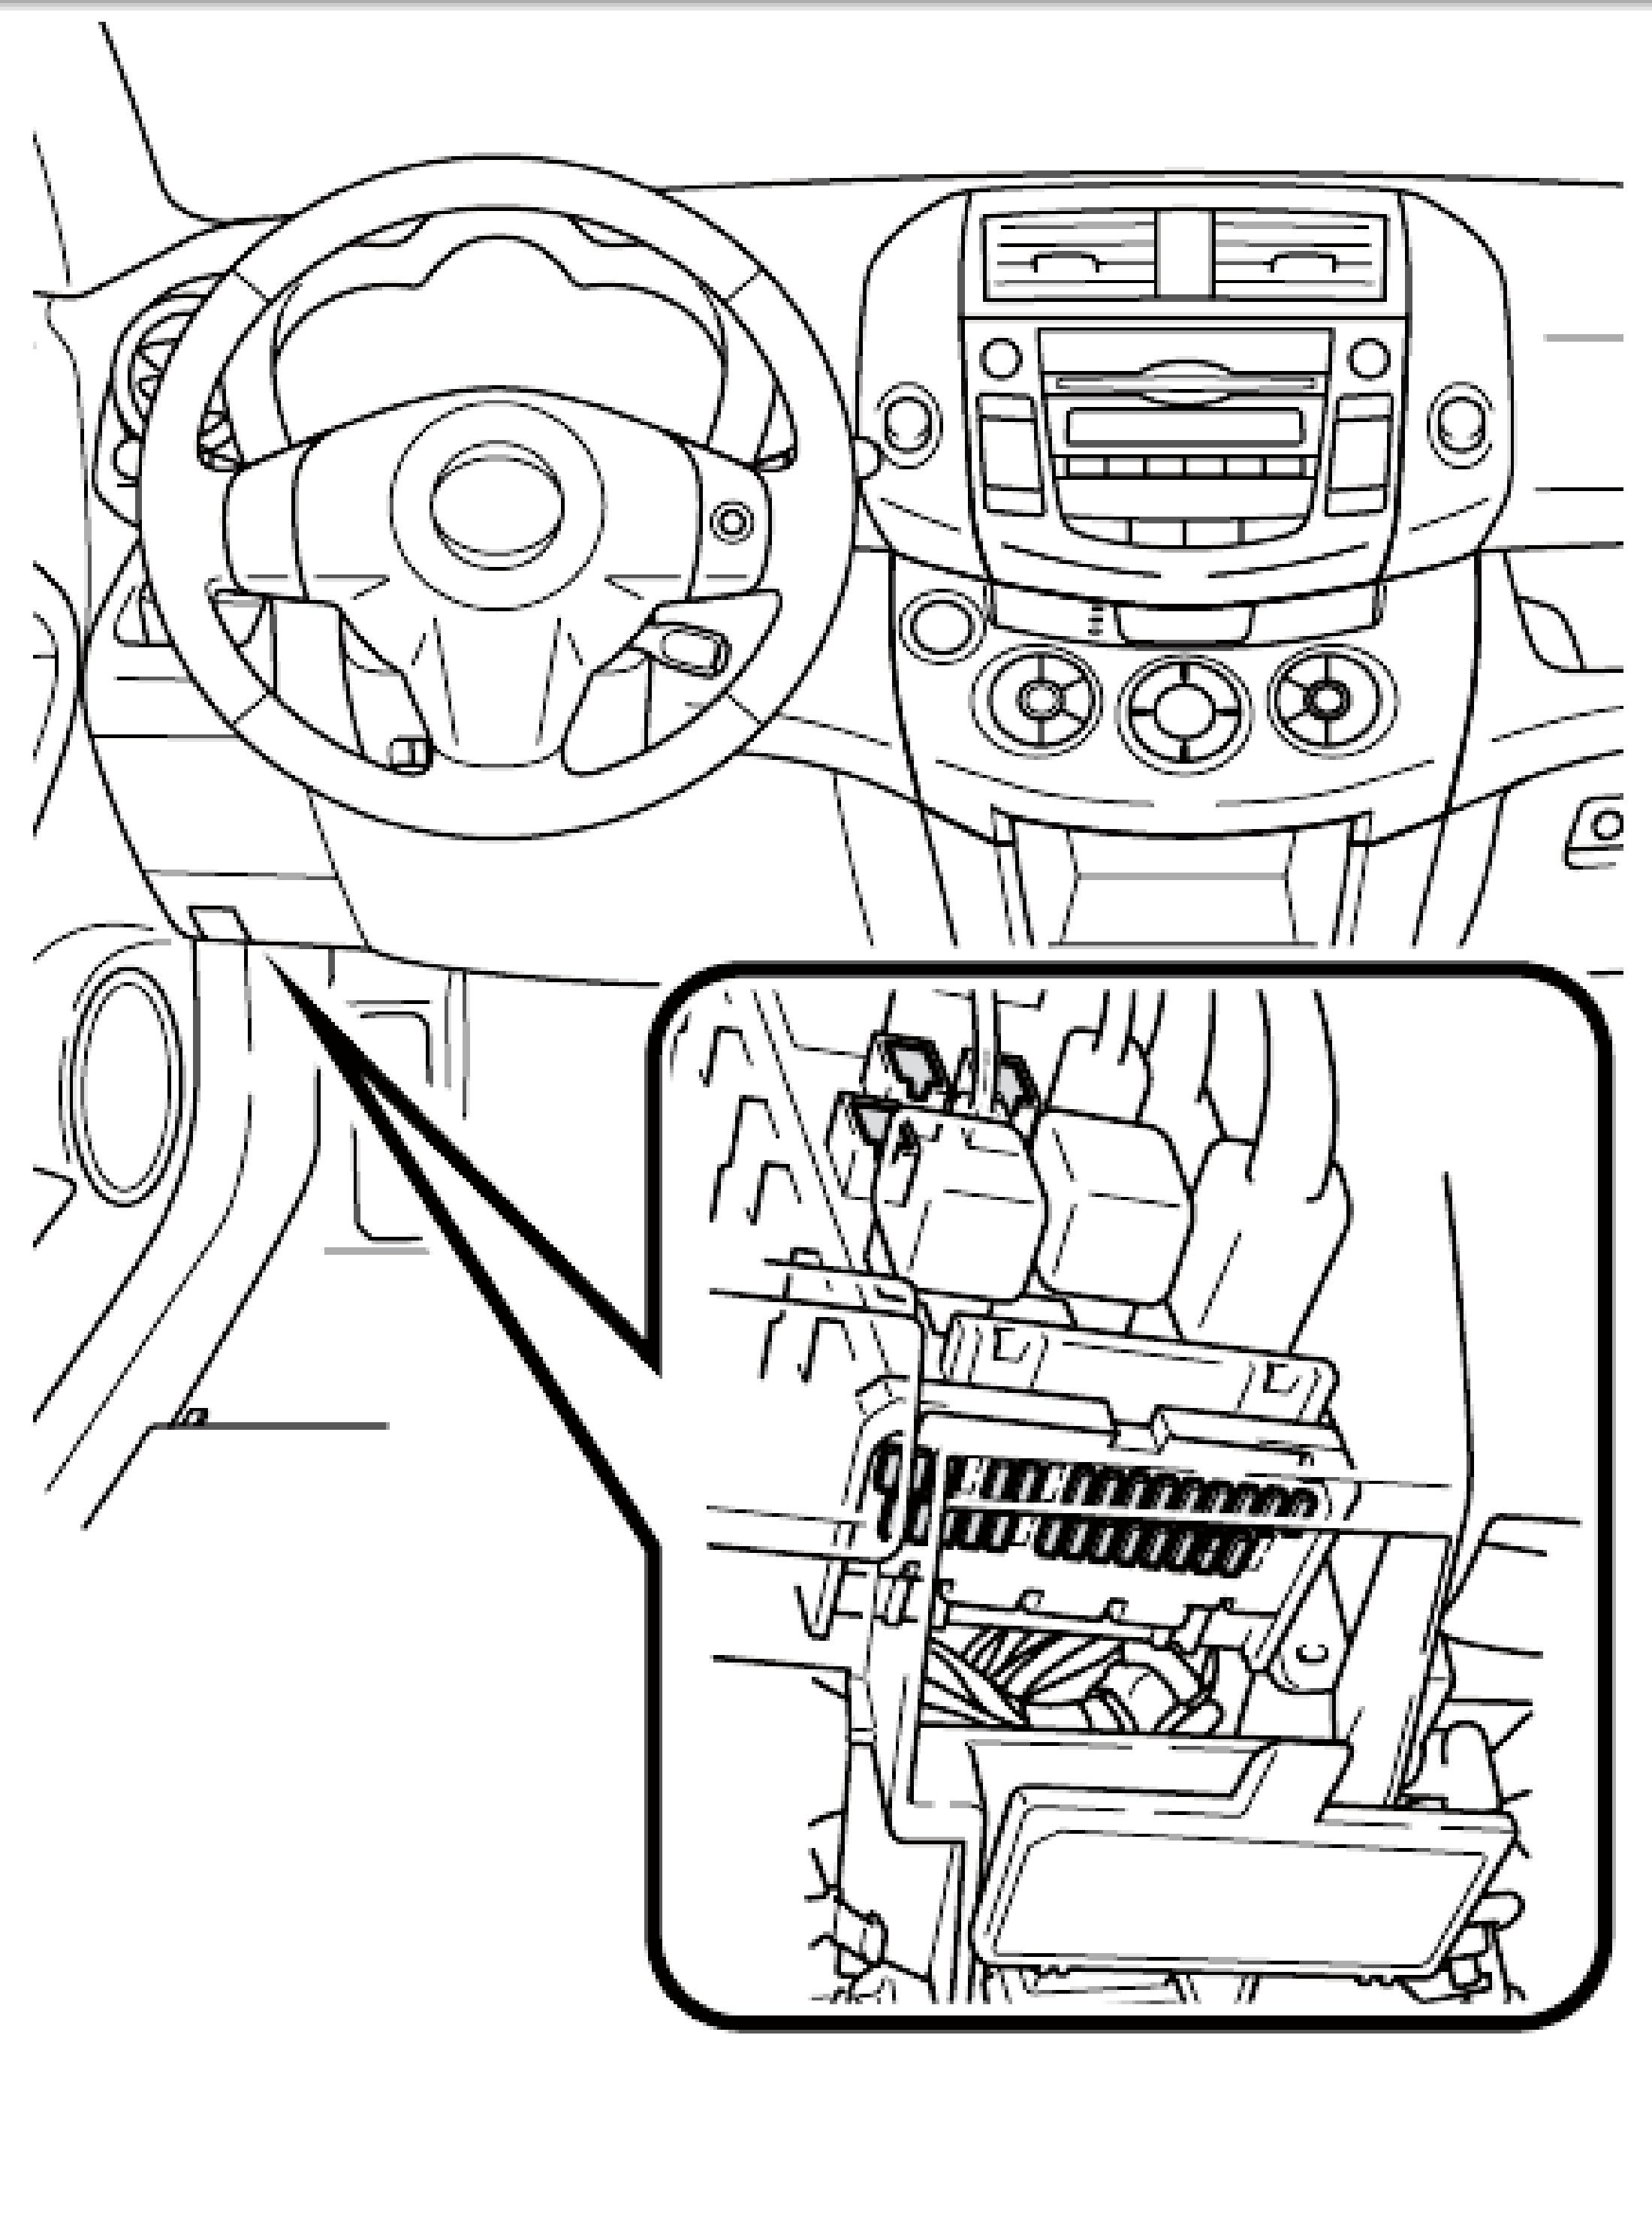 Suzuki Esteem Radio Wiring Diagram